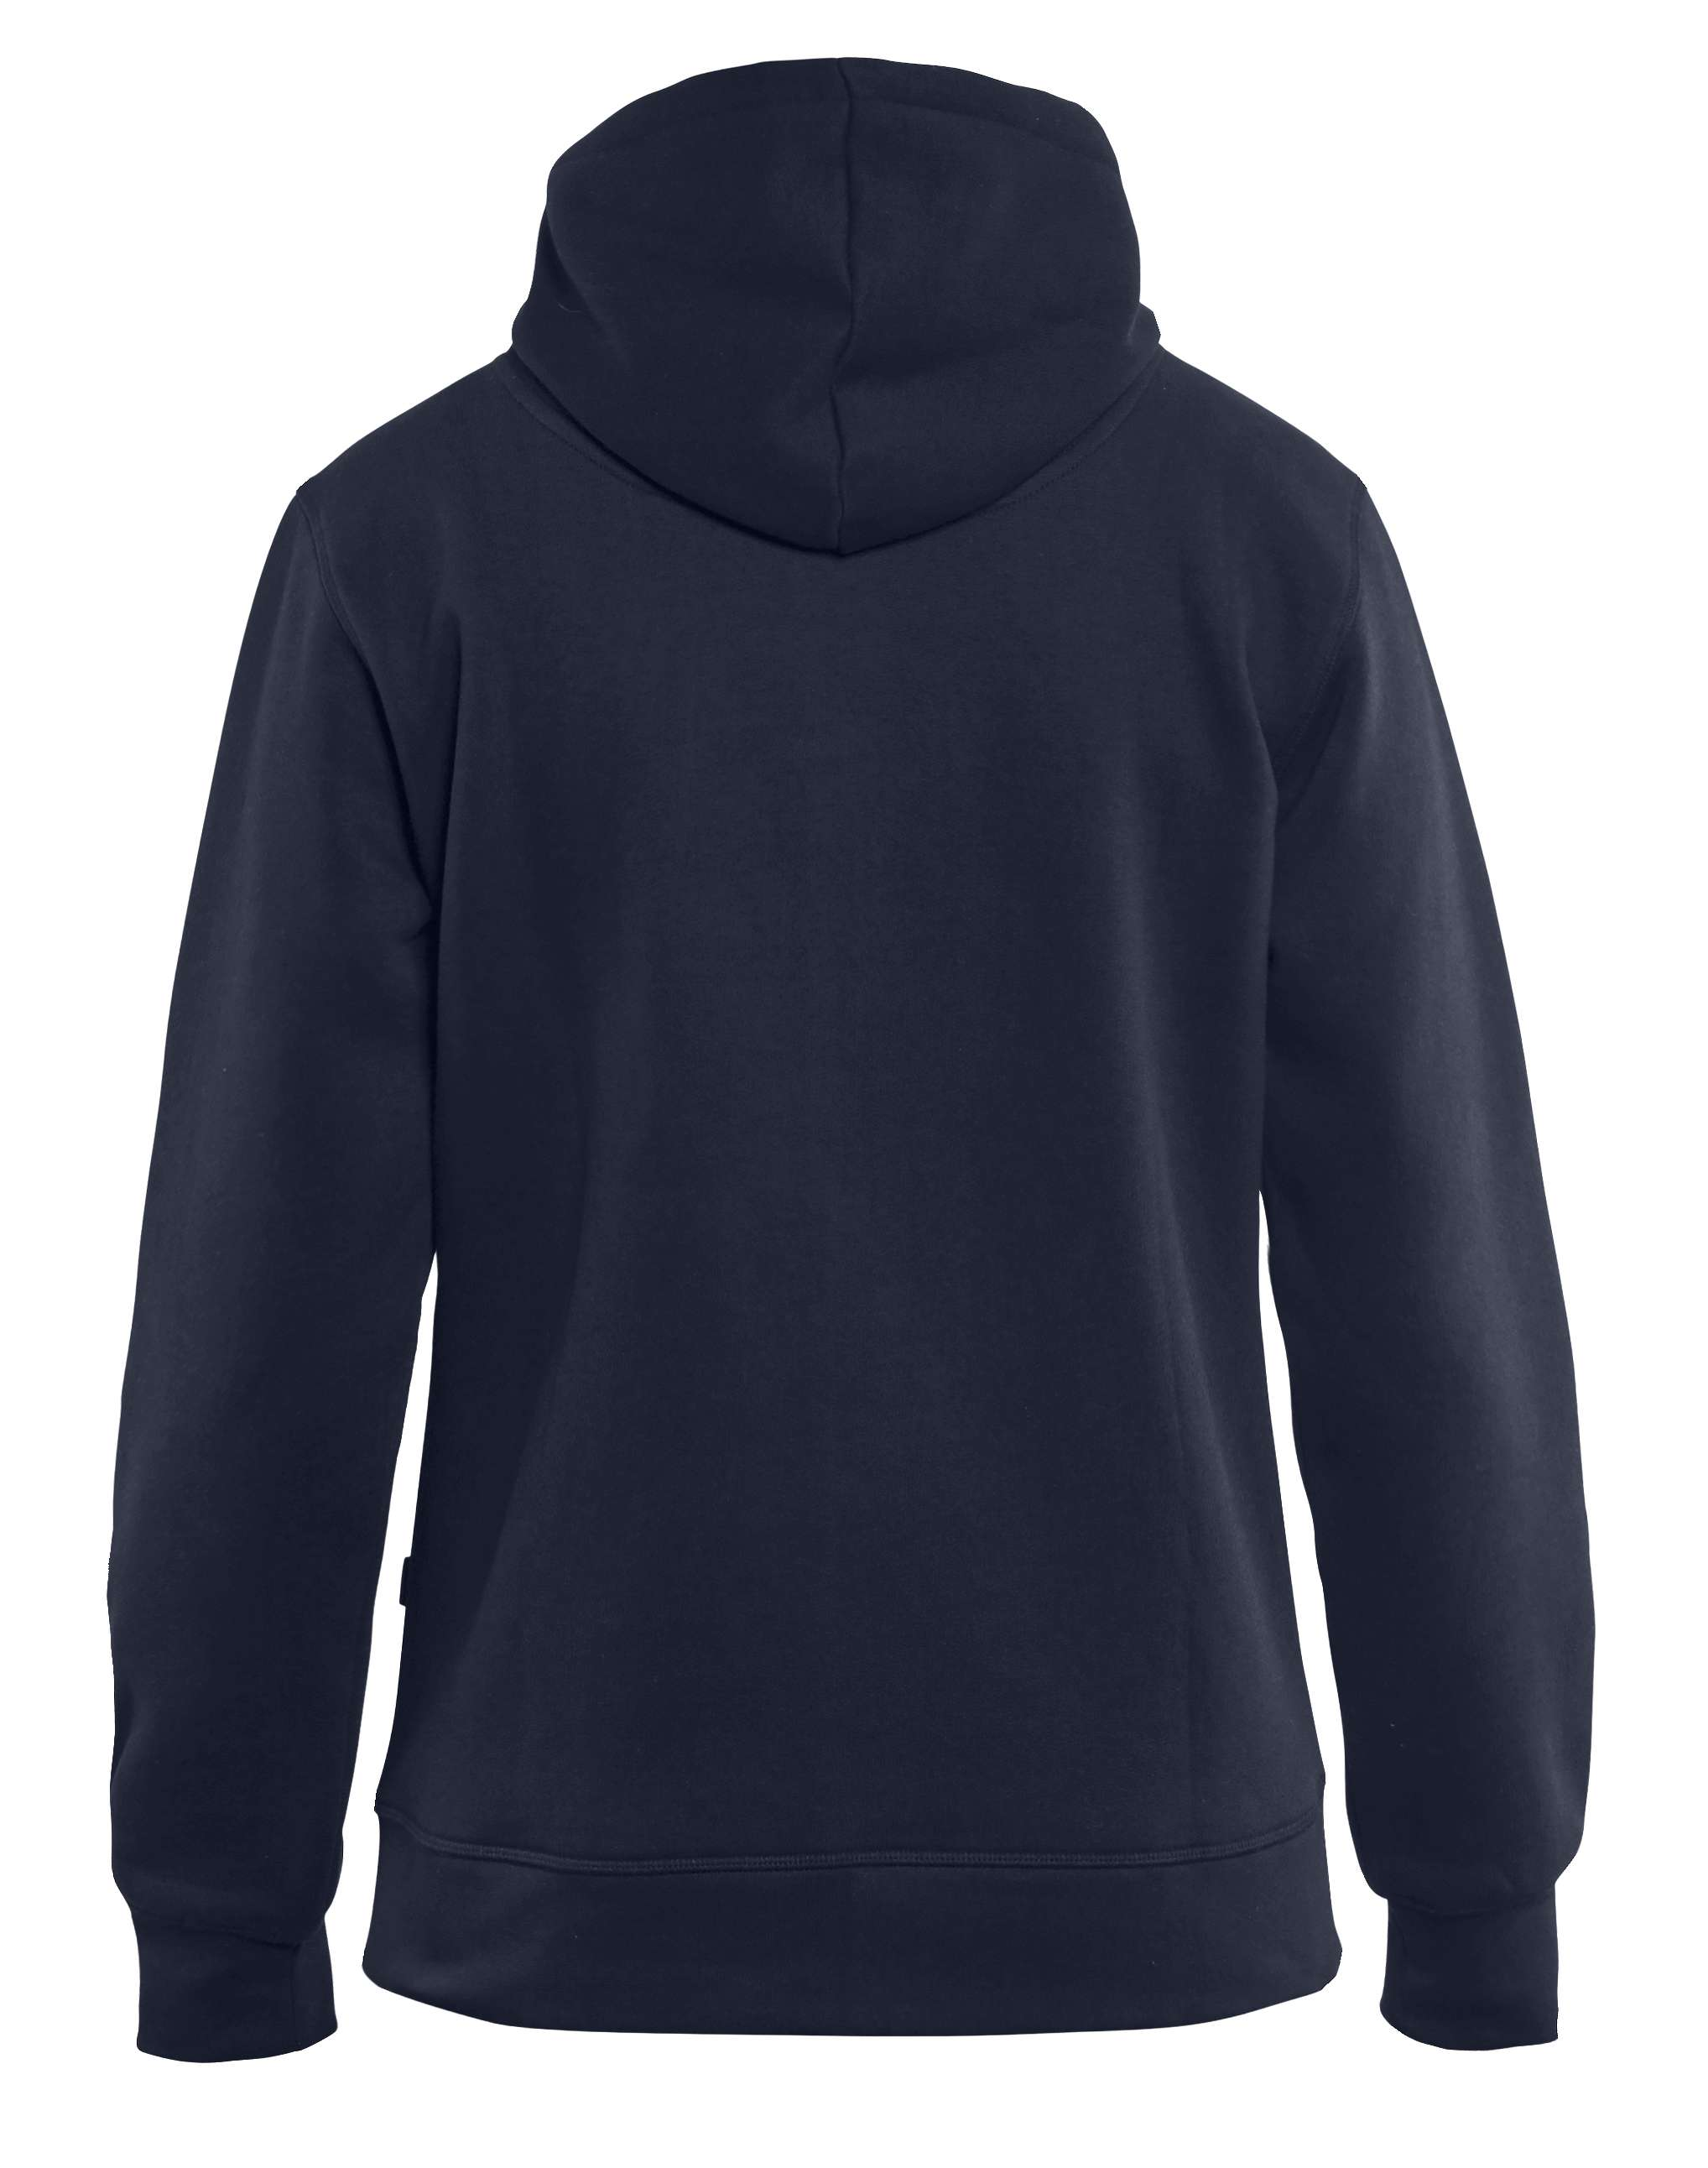 Blaklader Dames hooded sweatvesten 33951048 marineblauw(8800)